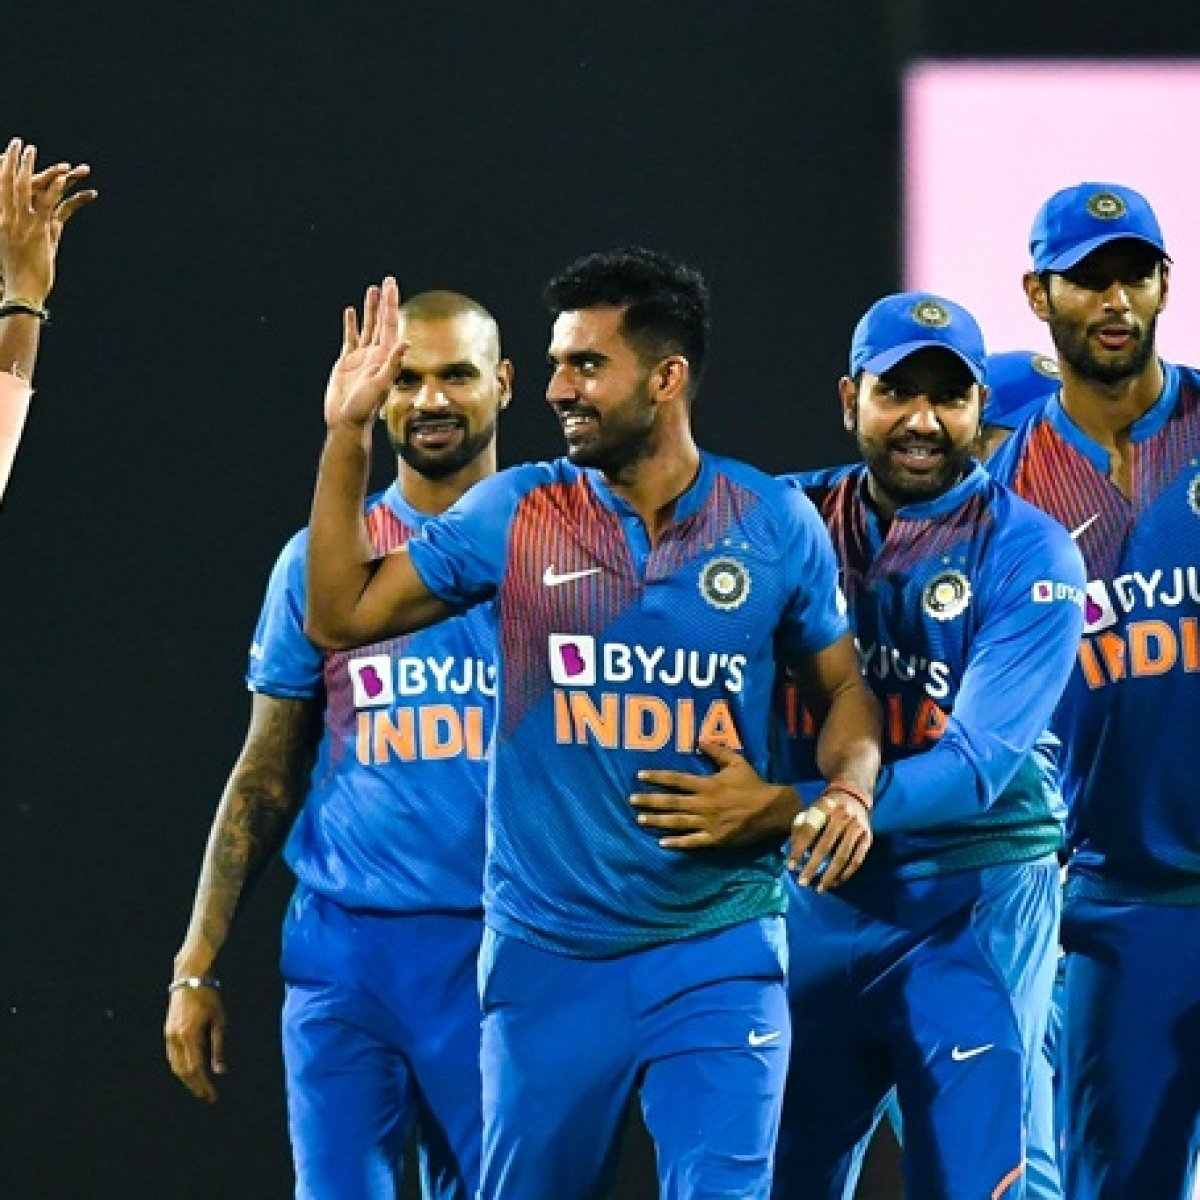 Dear cricket fans, Deepak Chahar isn't the first Indian to take a T20I hat-trick